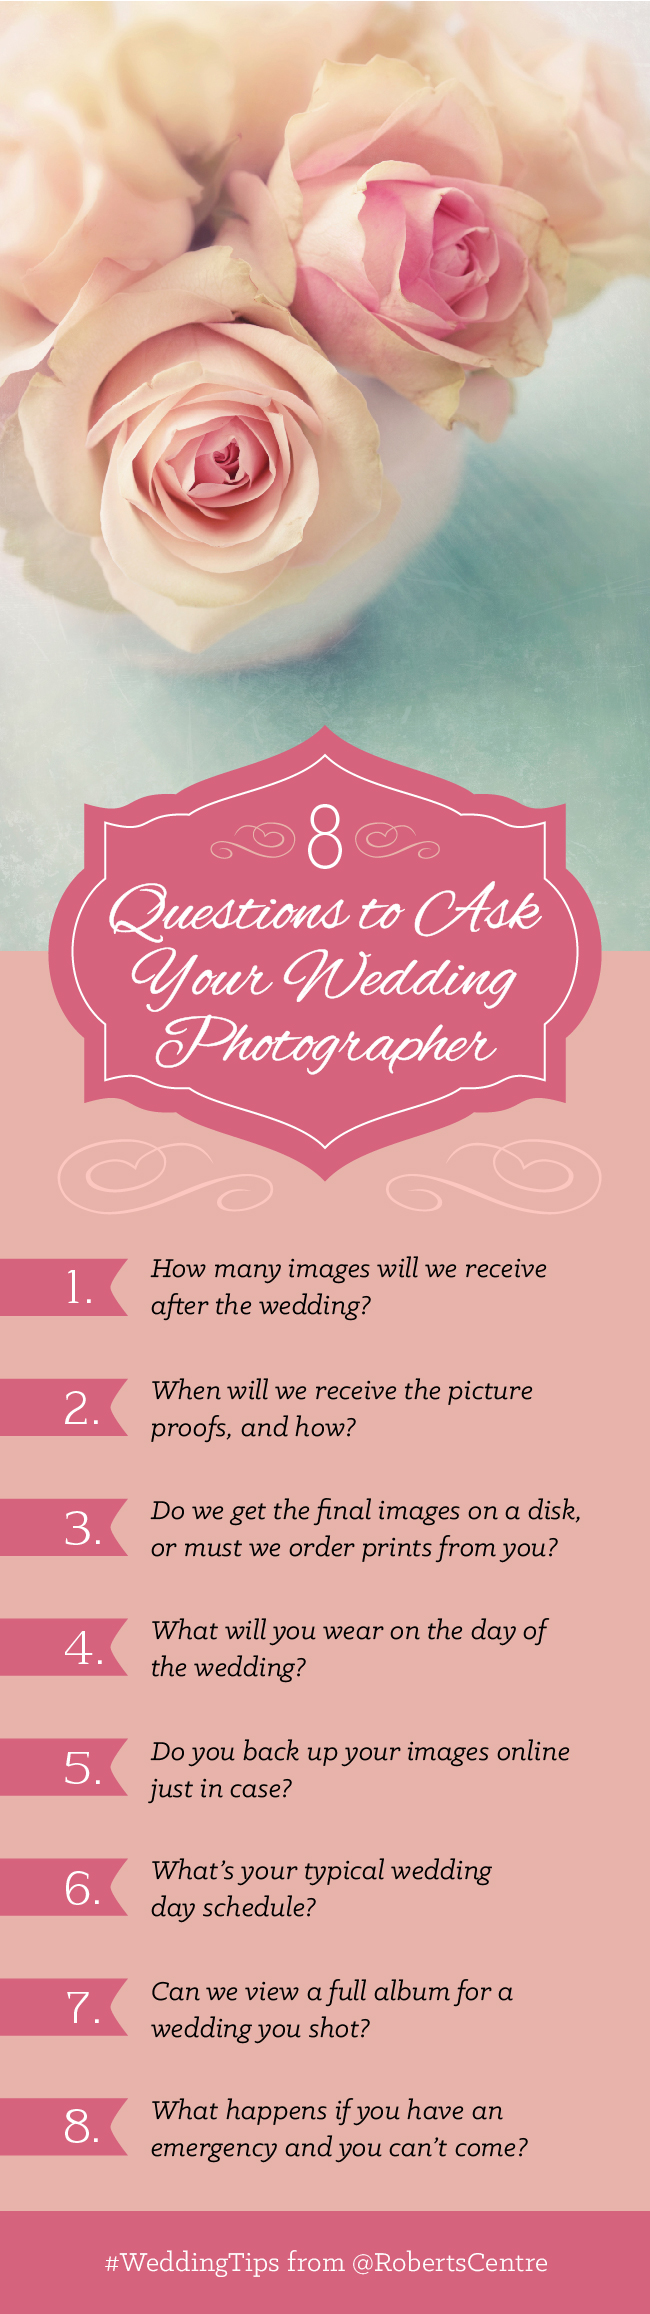 Questions to Ask Your Photographer Infographic (3)-01